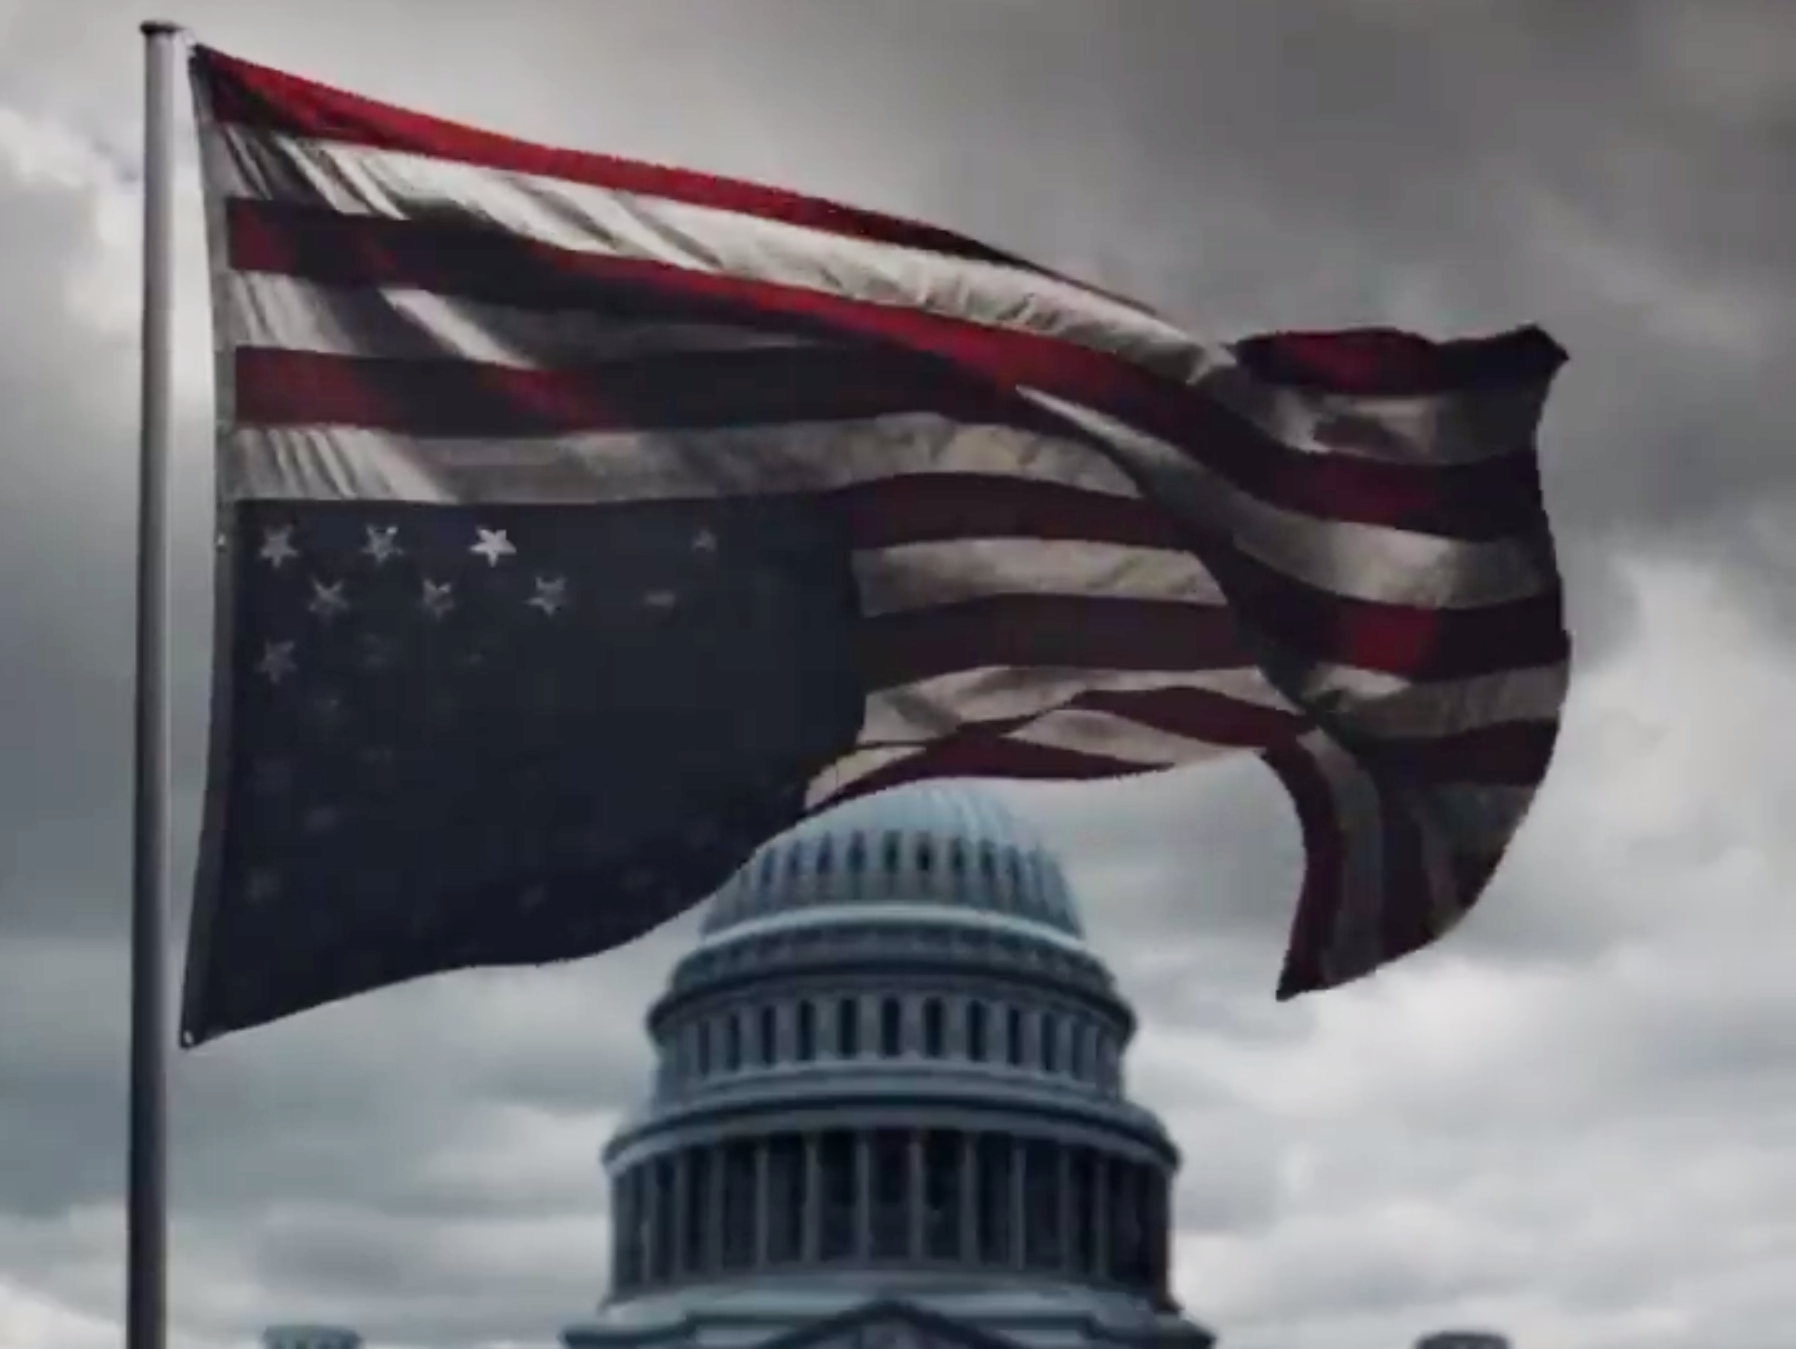 Netflix's New 'House of Cards' Trailer Is Cheap Trump Fear-Bait